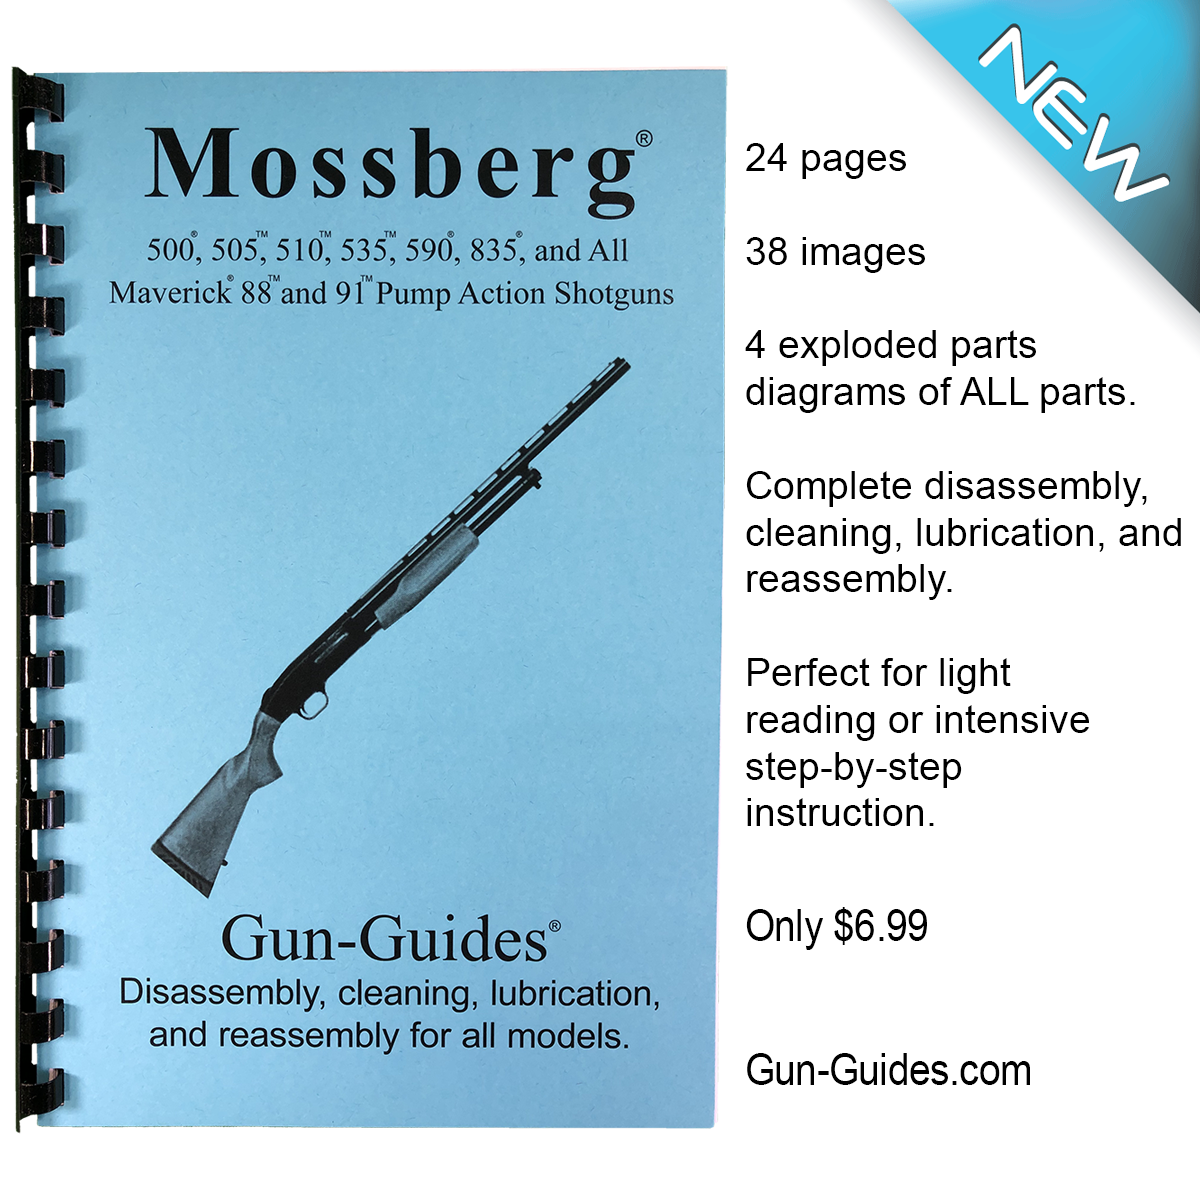 Mossberg Pump Action Shotguns Gun-Guides® Disassembly & Reassembly for All Models